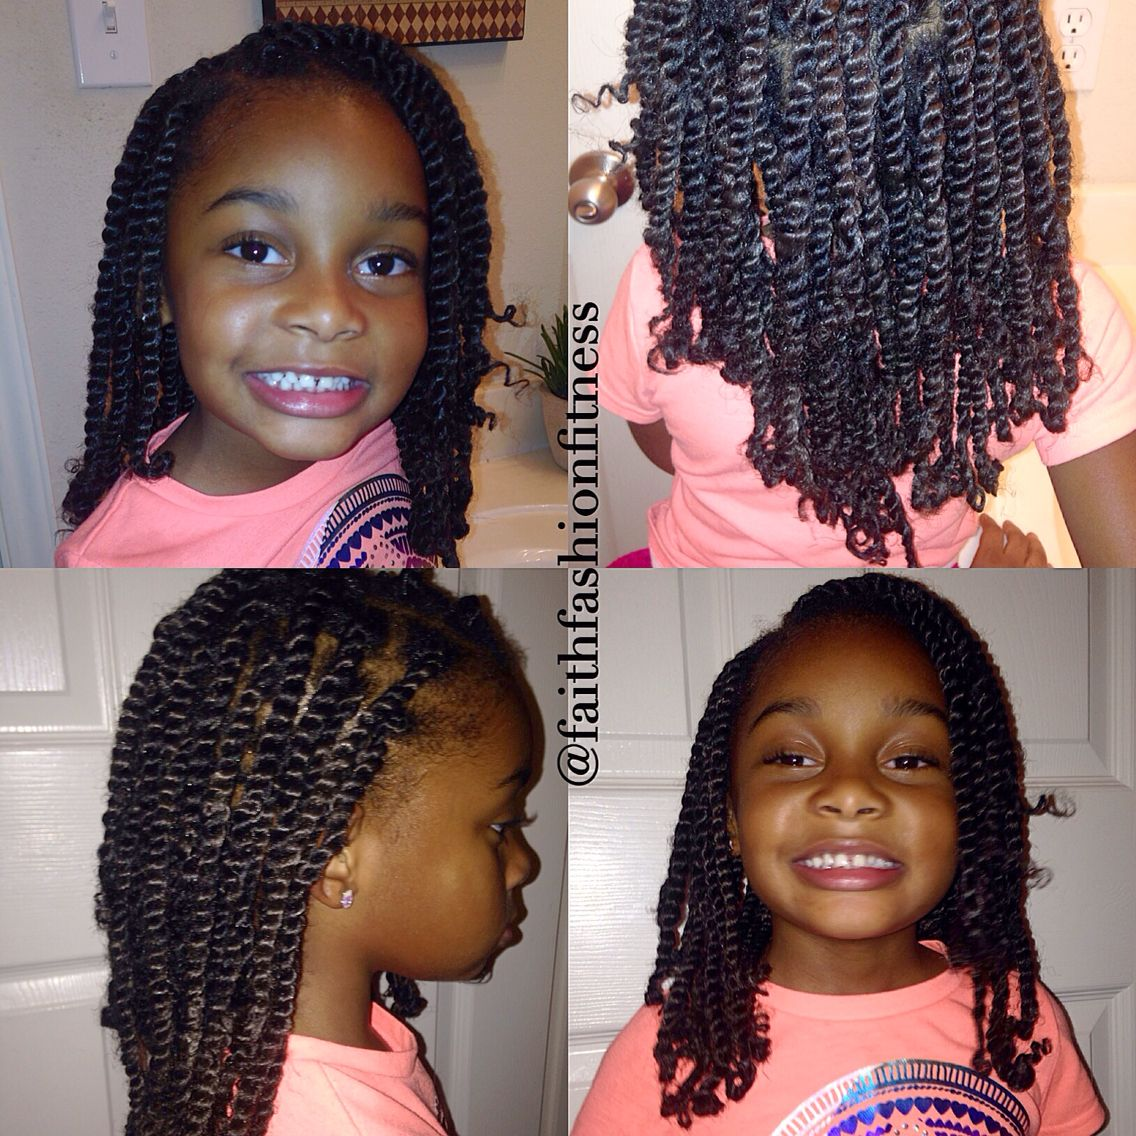 Natural kids hairstyle | Natural hairstyles for kids, Kids ...